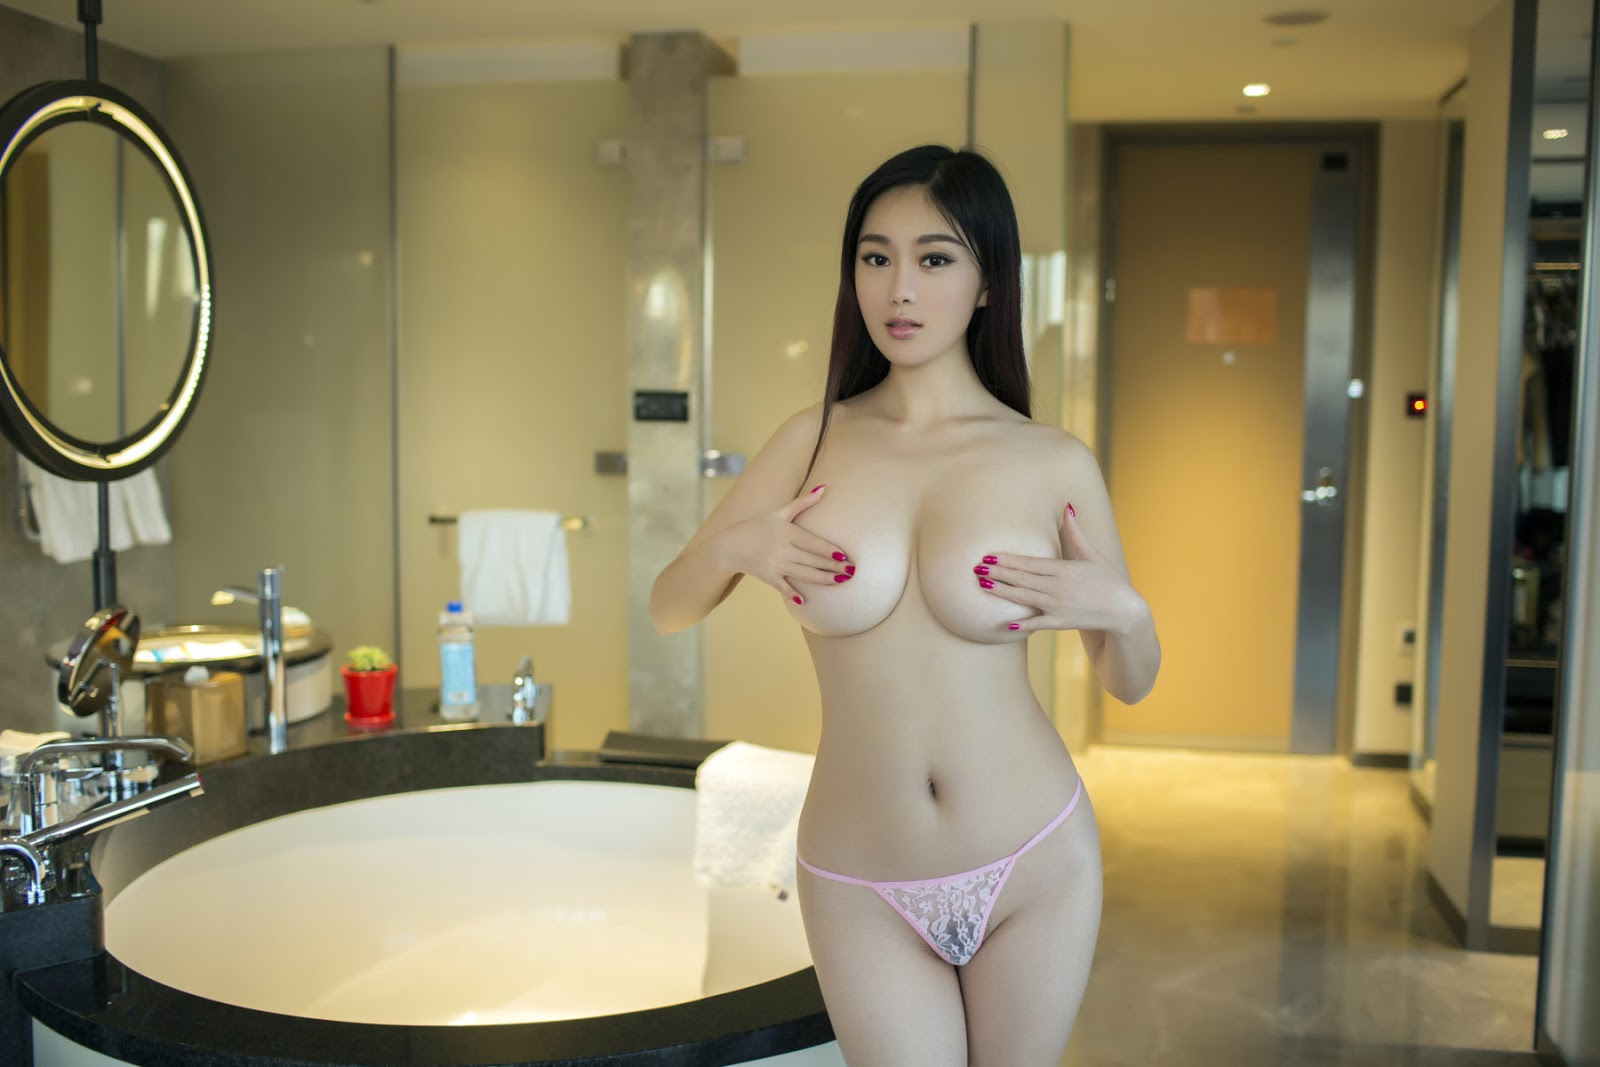 Breasted naked photo of china natural